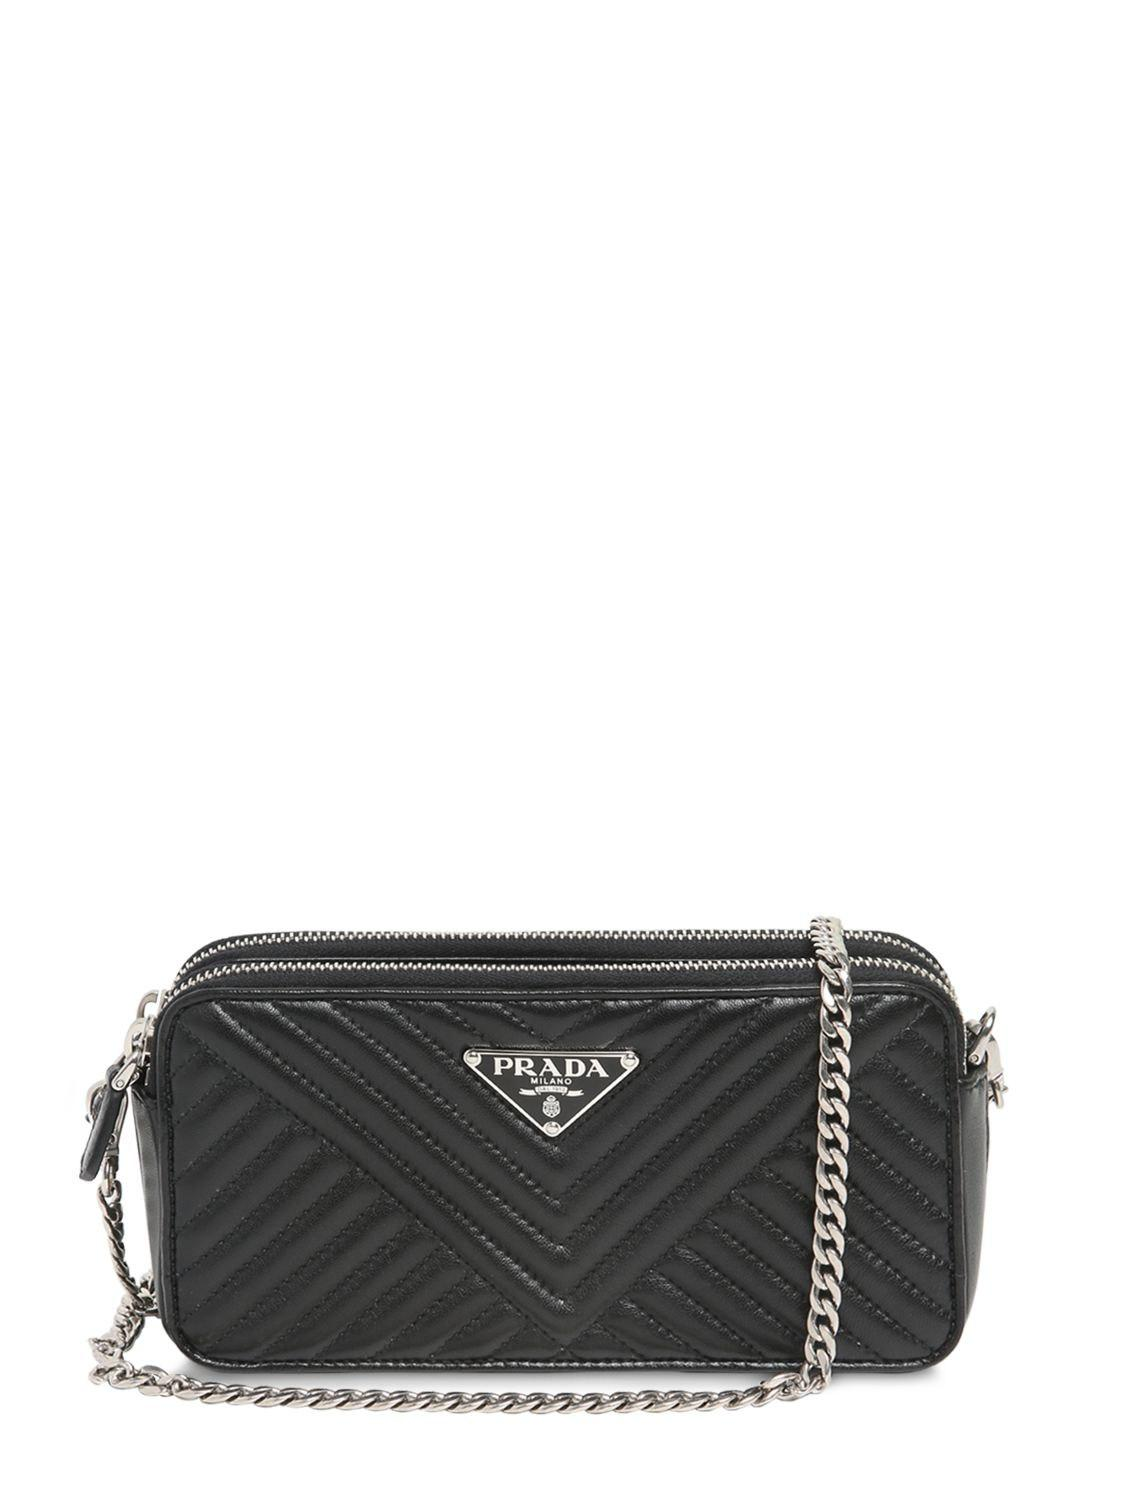 f1872fe7c054 Prada Quilted Nappa Leather Shoulder Bag in Black - Lyst